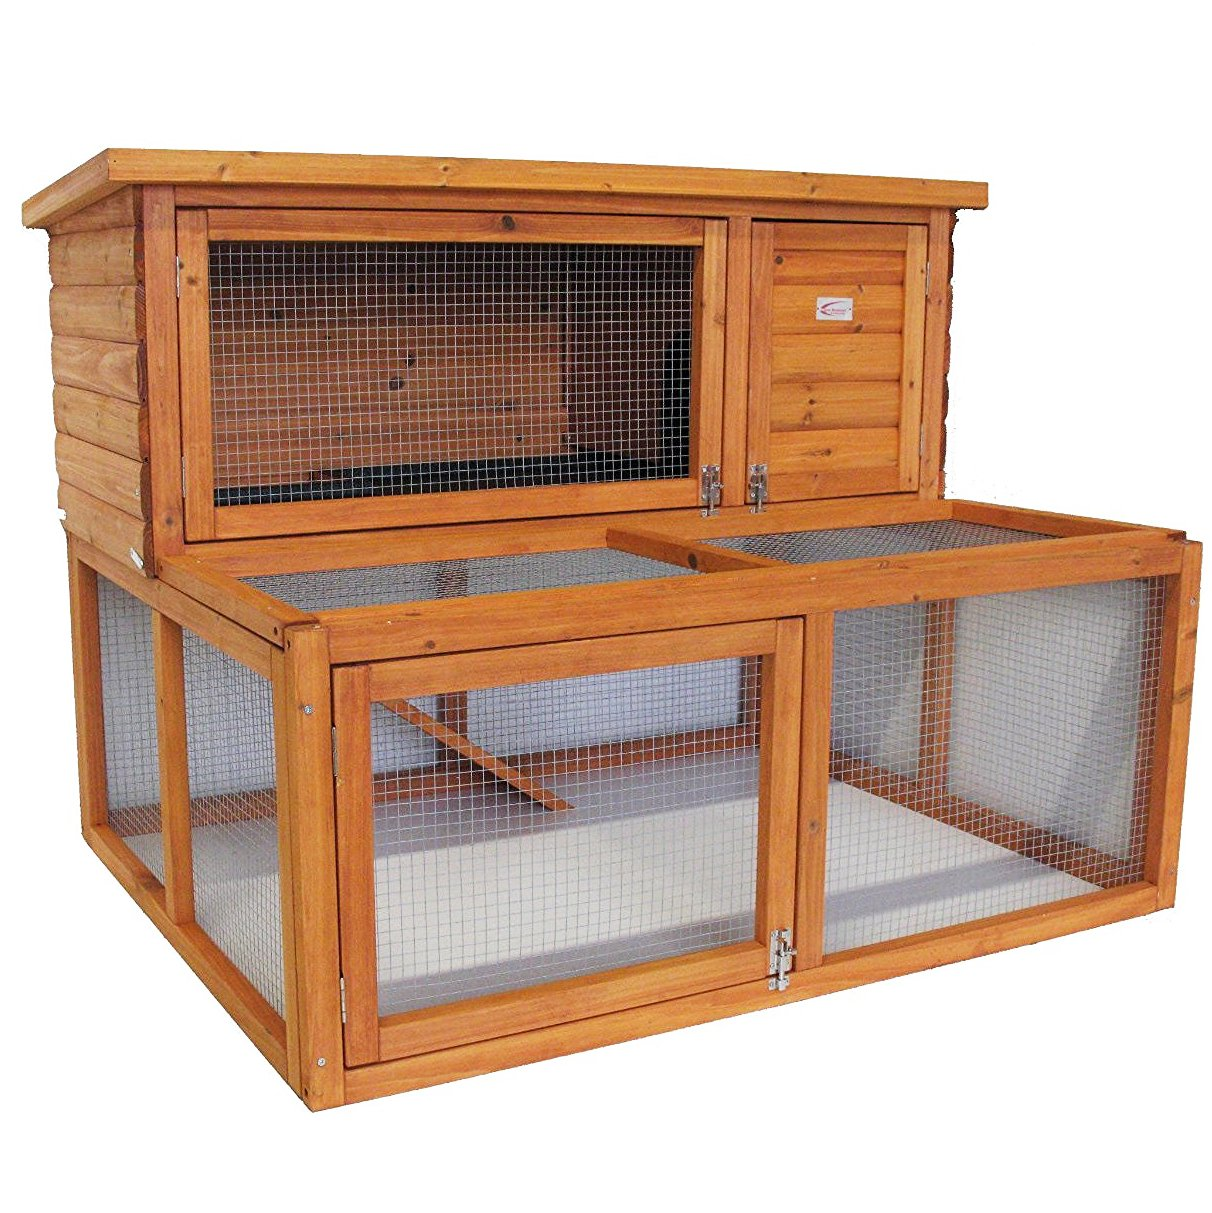 Rabbit Hutch - 2 Tier Extended Guinea Pig Pet House With Run